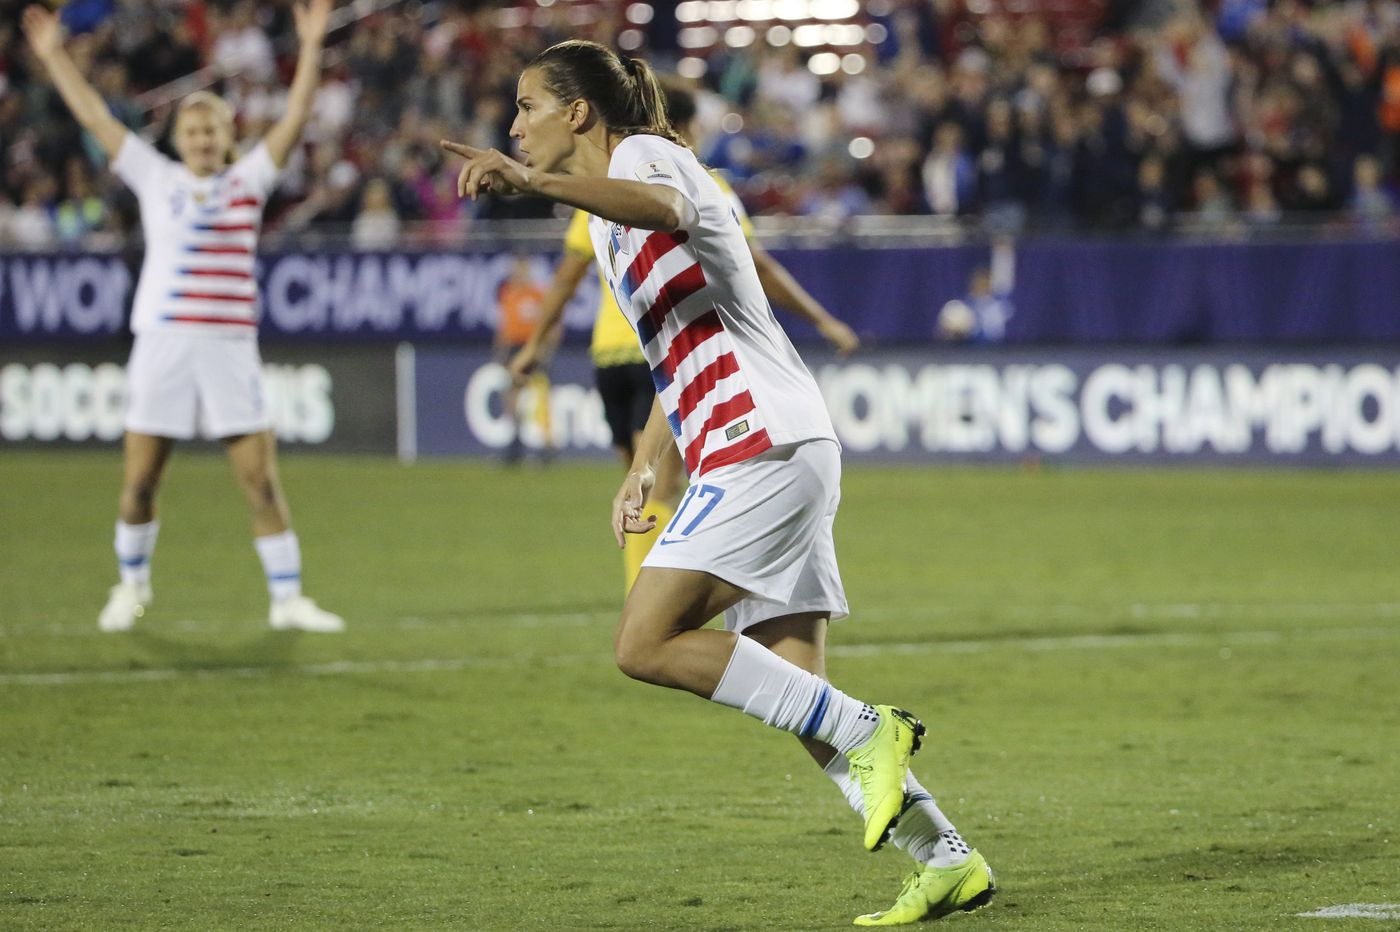 Tobin Heath stars as U.S. women's soccer team qualifies for World Cup with 6-0 win over Jamaica